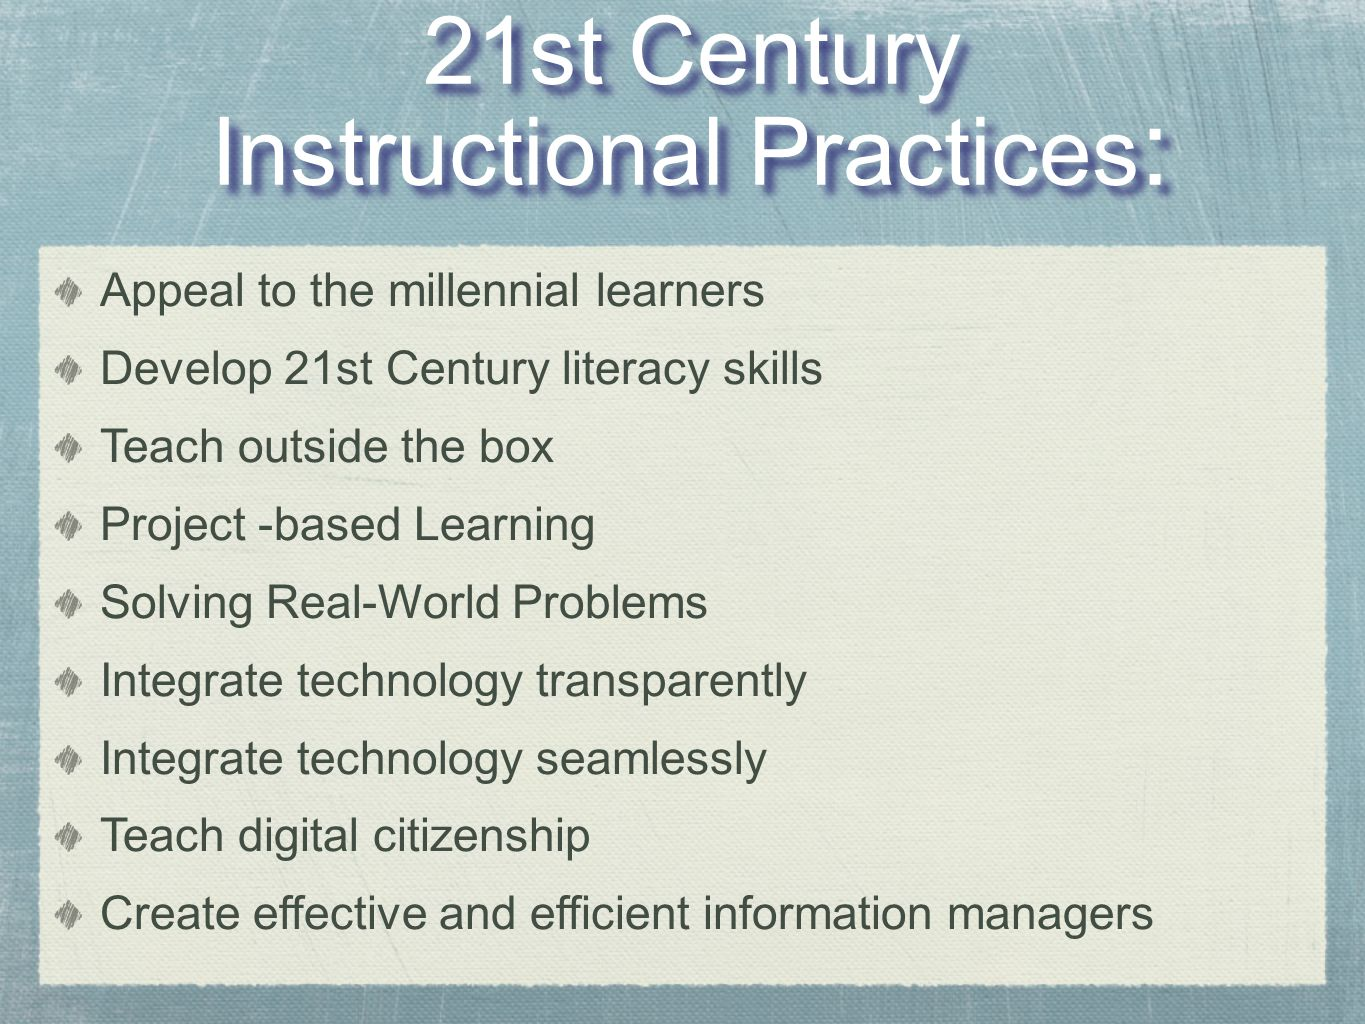 21st Century Instructional Practices : 21st Century Instructional Practices : Appeal to the millennial learners Develop 21st Century literacy skills Teach outside the box Project -based Learning Solving Real-World Problems Integrate technology transparently Integrate technology seamlessly Teach digital citizenship Create effective and efficient information managers